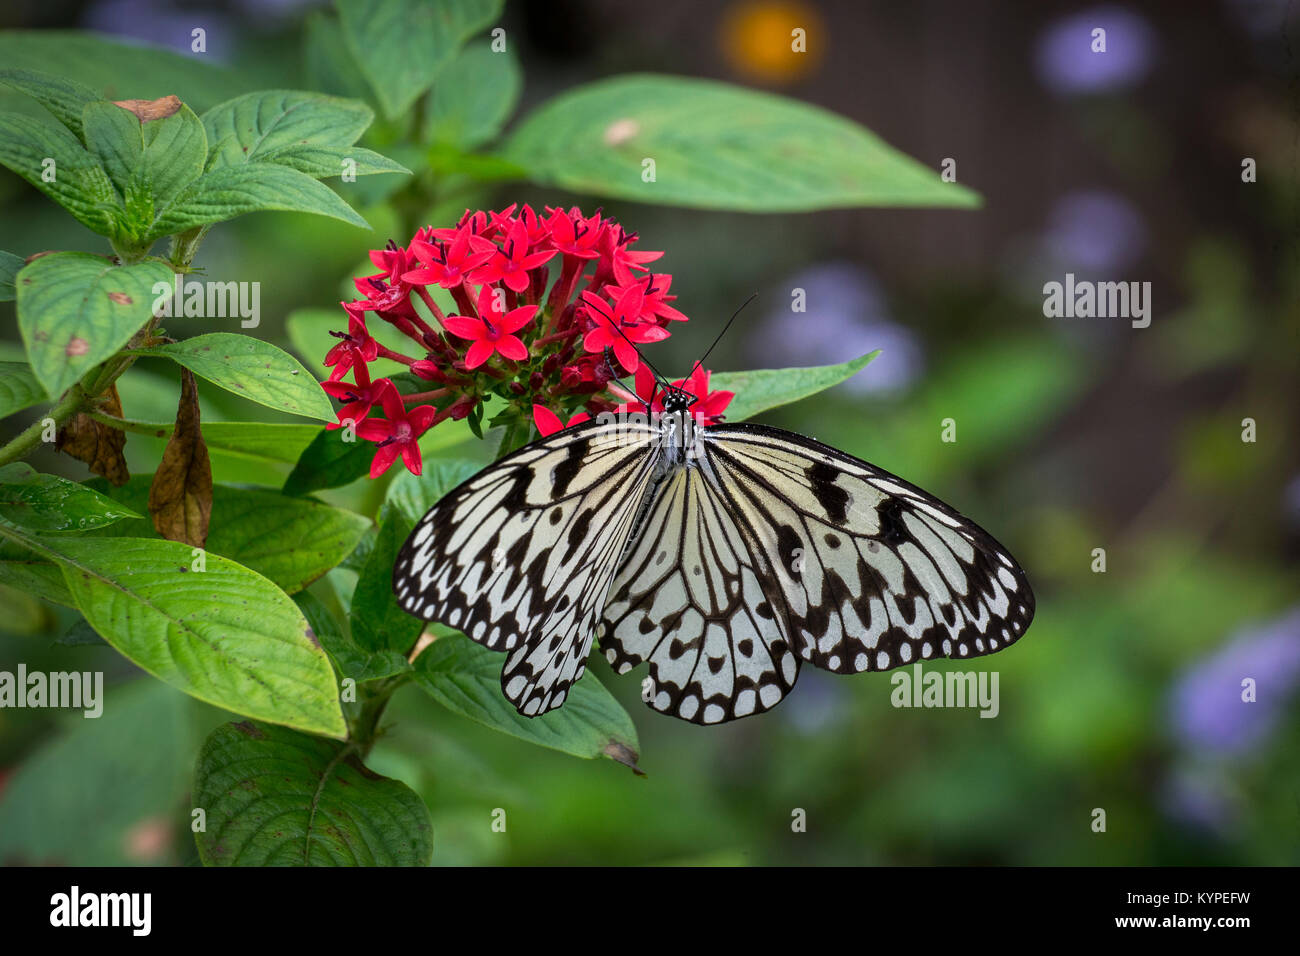 Idea leuconoe, the paper kite, rice paper or large tree nymph butterfly on red flowers - Stock Image